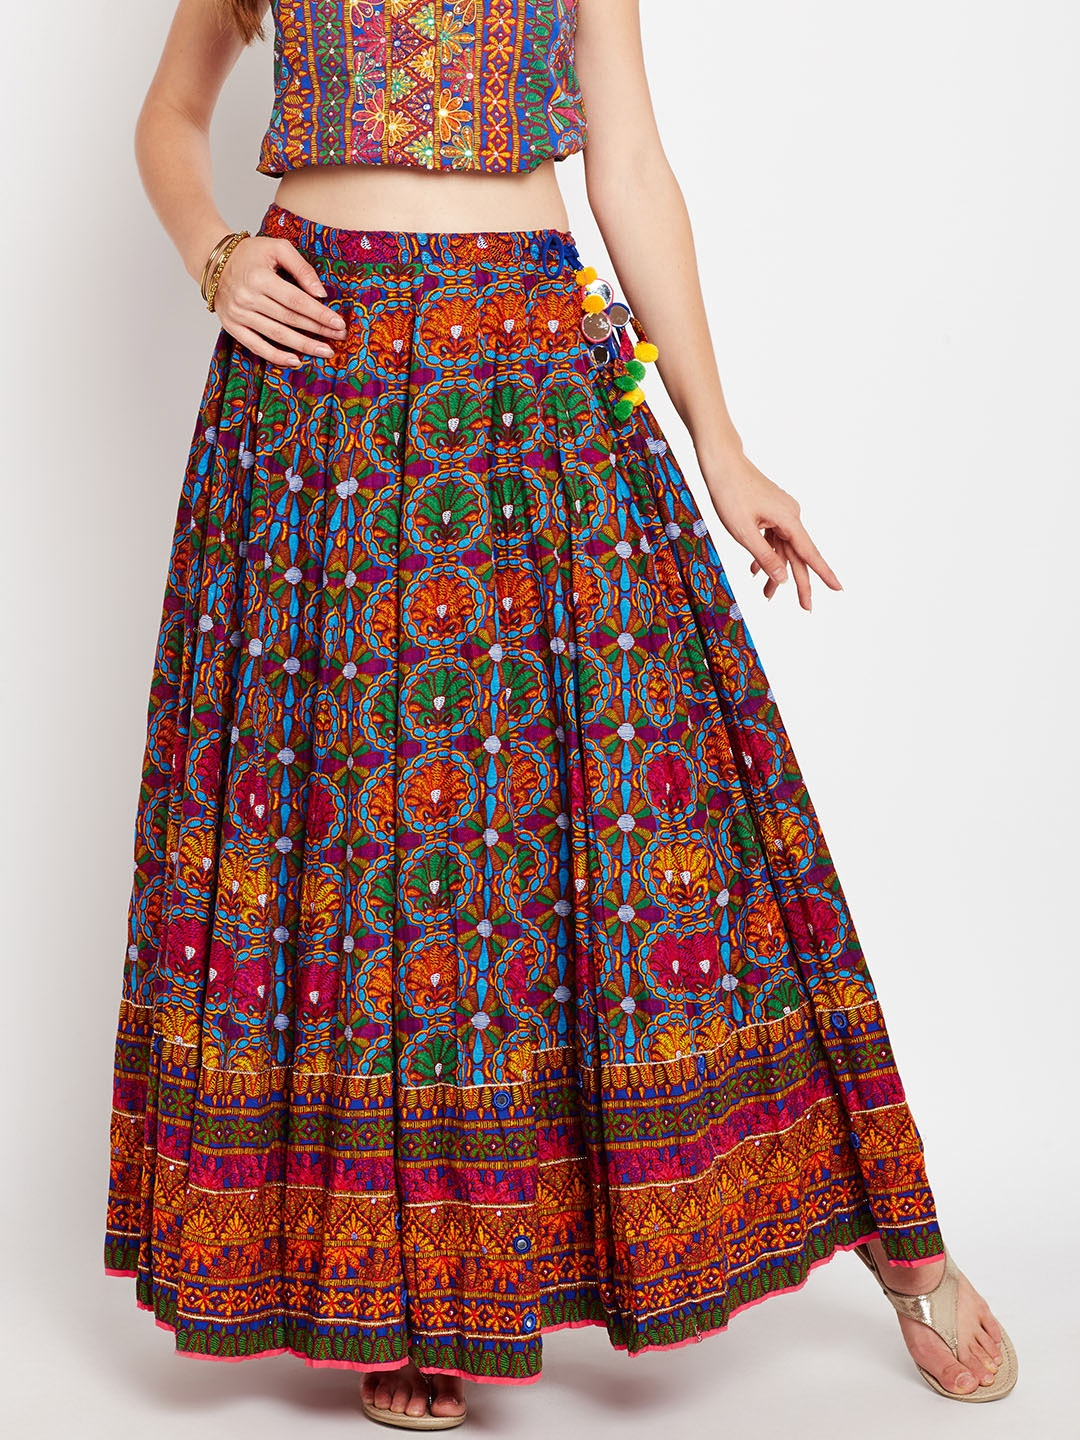 06829f8bcb Biba Multicoloured Printed Maxi Flared Skirt. This product is already at  its best price